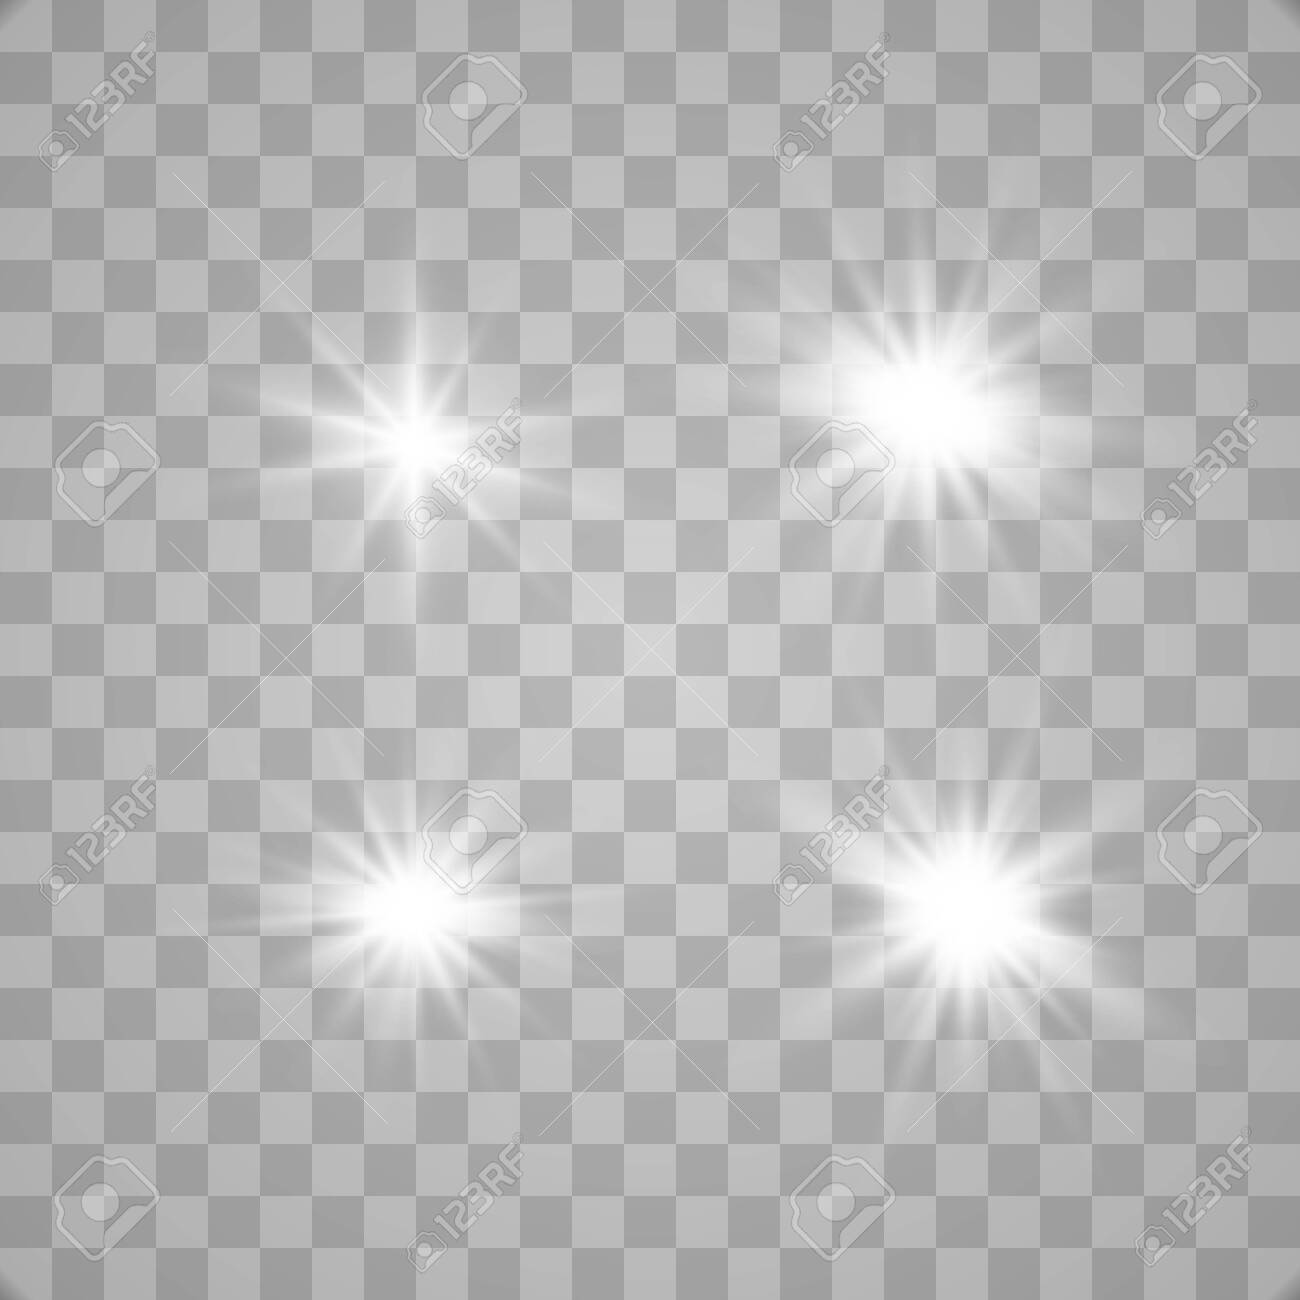 Set of glowing lights effects isolated on transparent background. Glowing lights effect, flare, explosion and stars. Bright Star. - 137129391